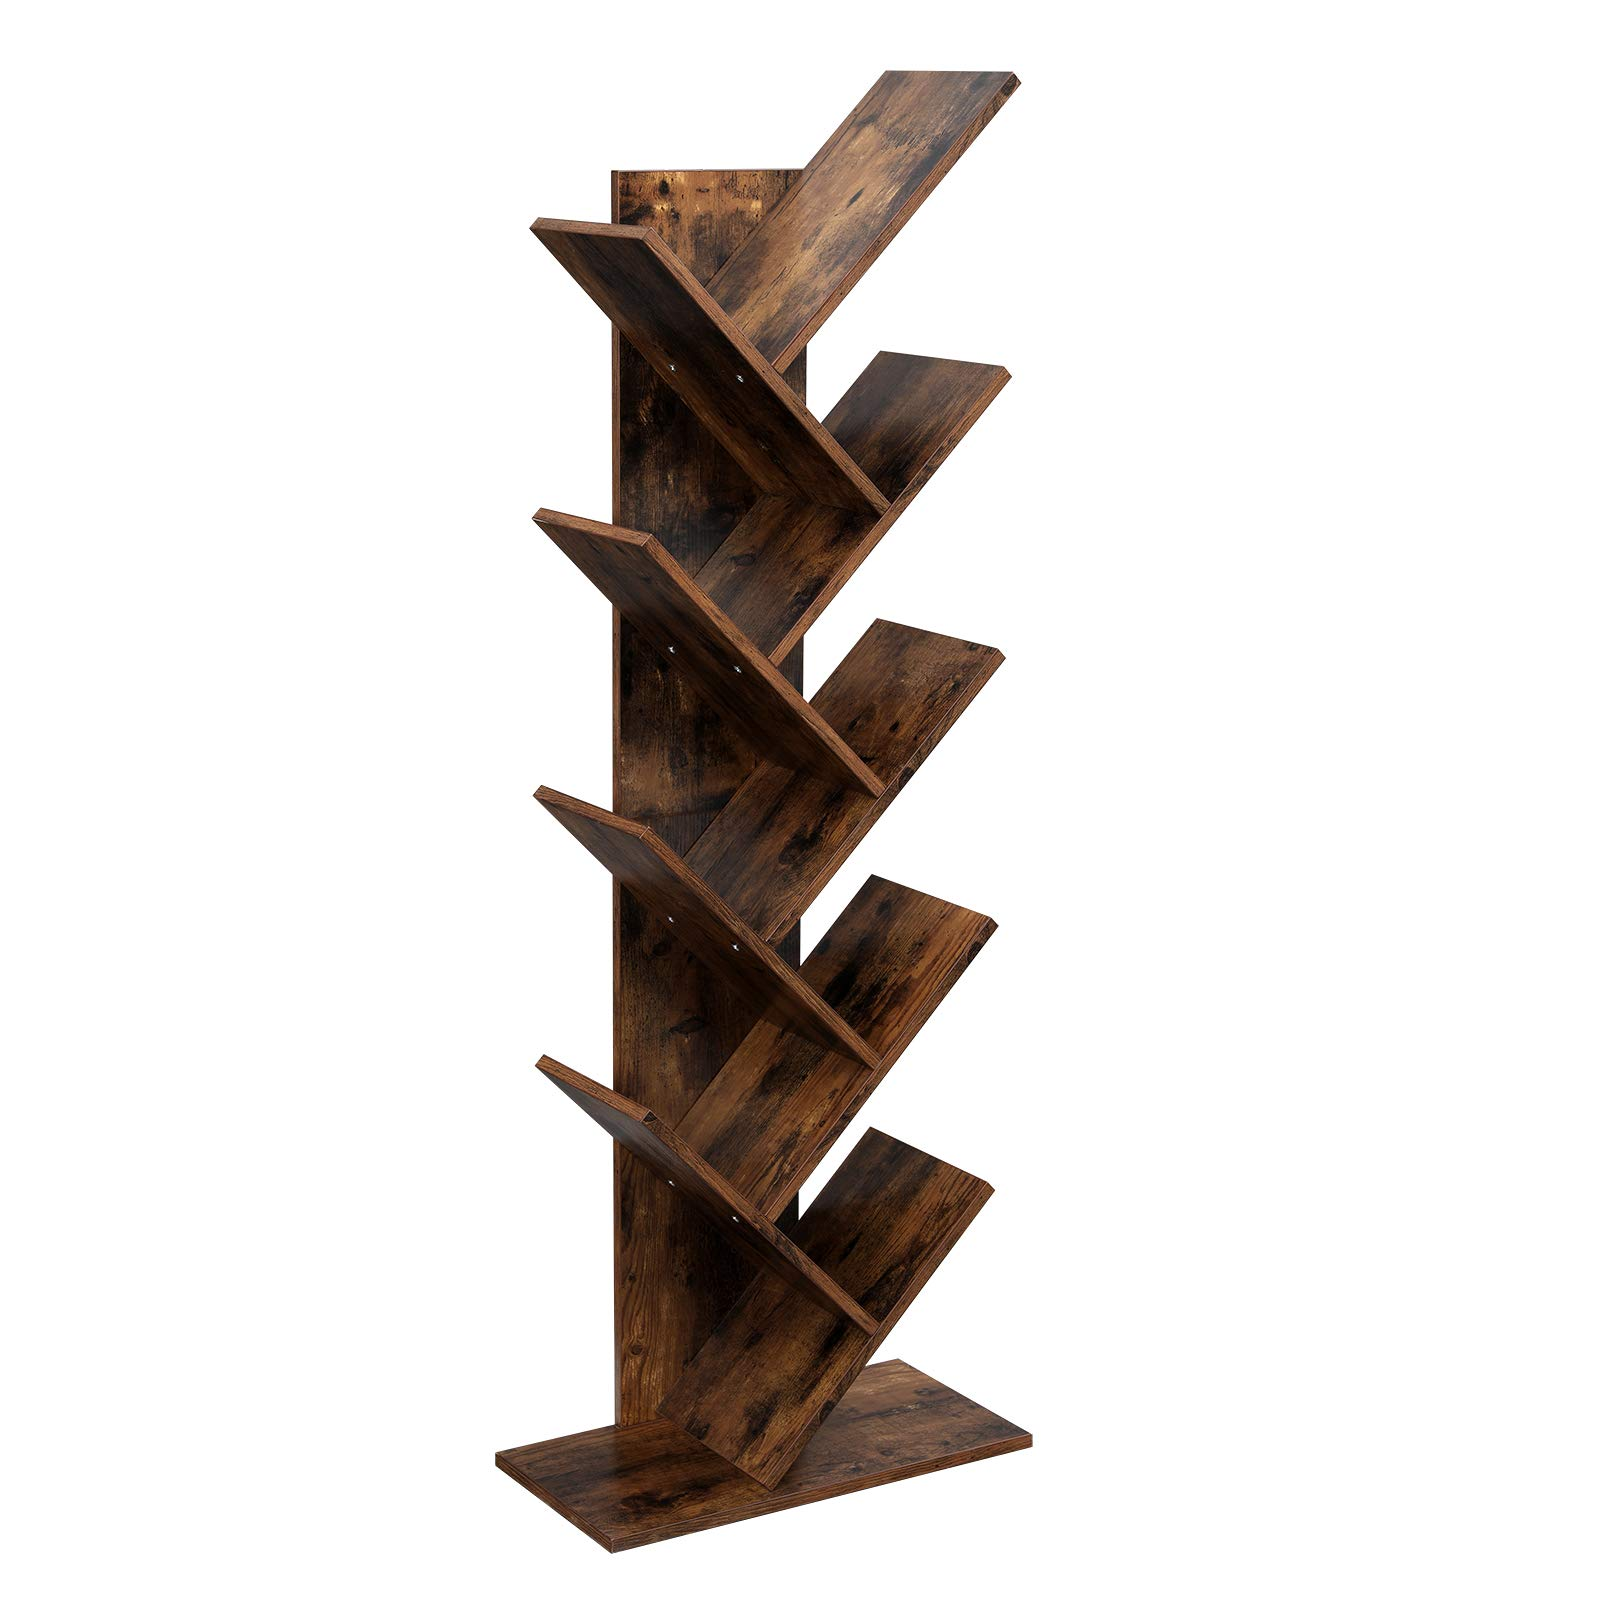 VASAGLE Tree Bookshelf, 8-Tier Floor Standing Bookcase, with Wooden Shelves for Living Room, Home Office, Rustic Brown ULBC11BX by VASAGLE (Image #7)